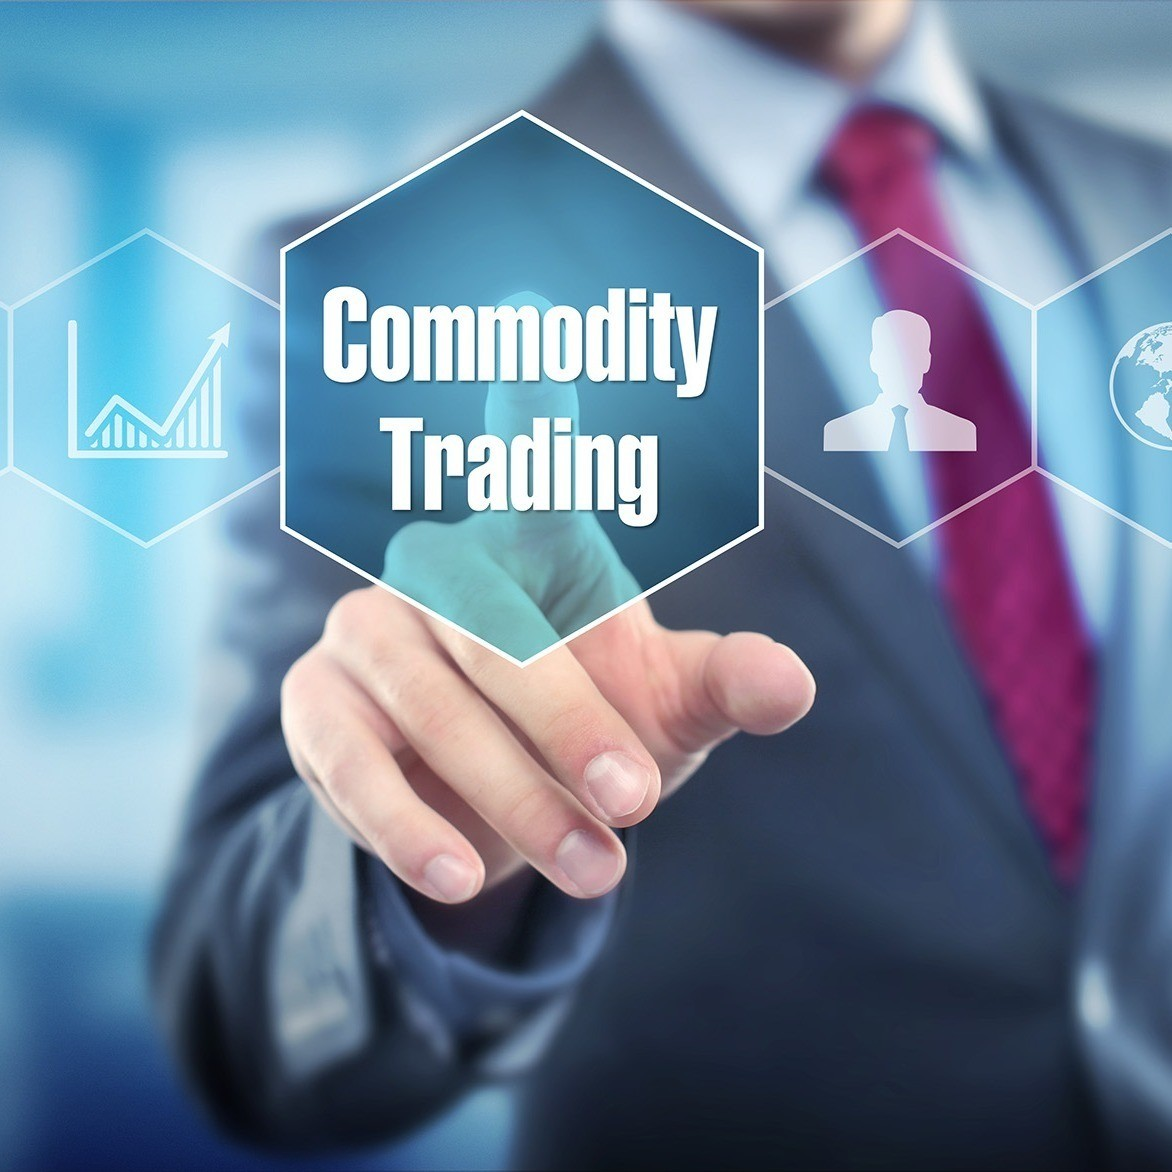 A Complete Guide to Trading Commodities, From Beginner to Active Trader